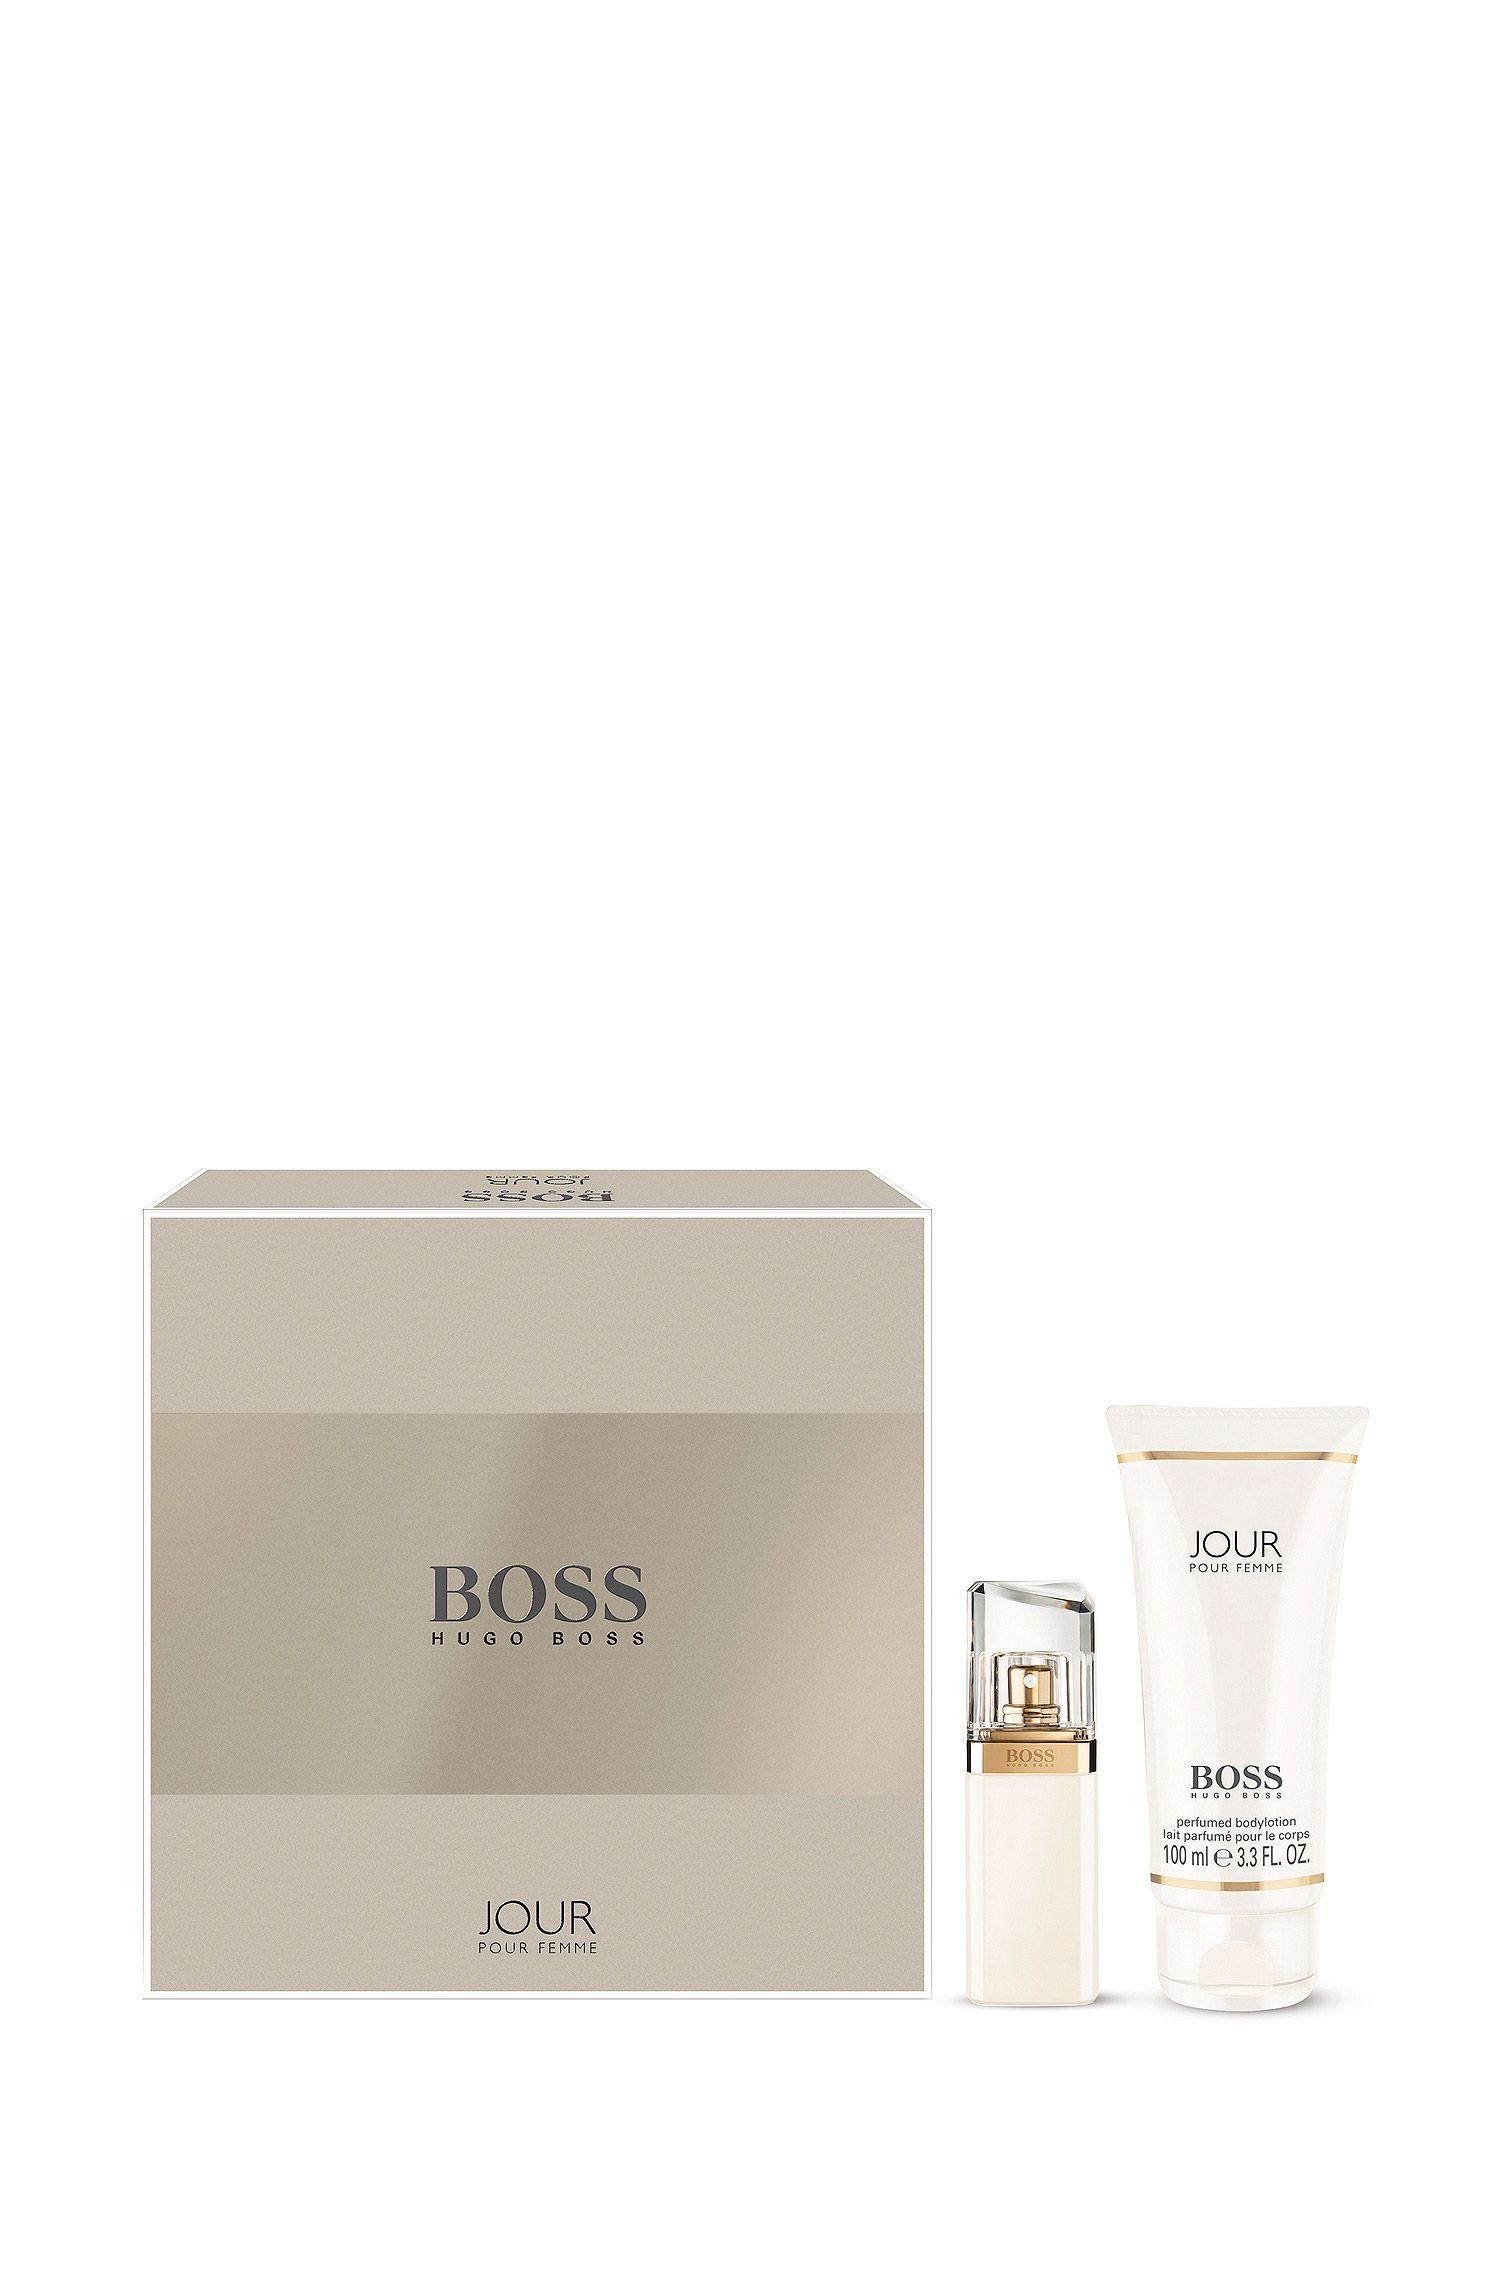 'BOSS Jour' gift set with Eau de Parfum 30 ml and Body Lotion